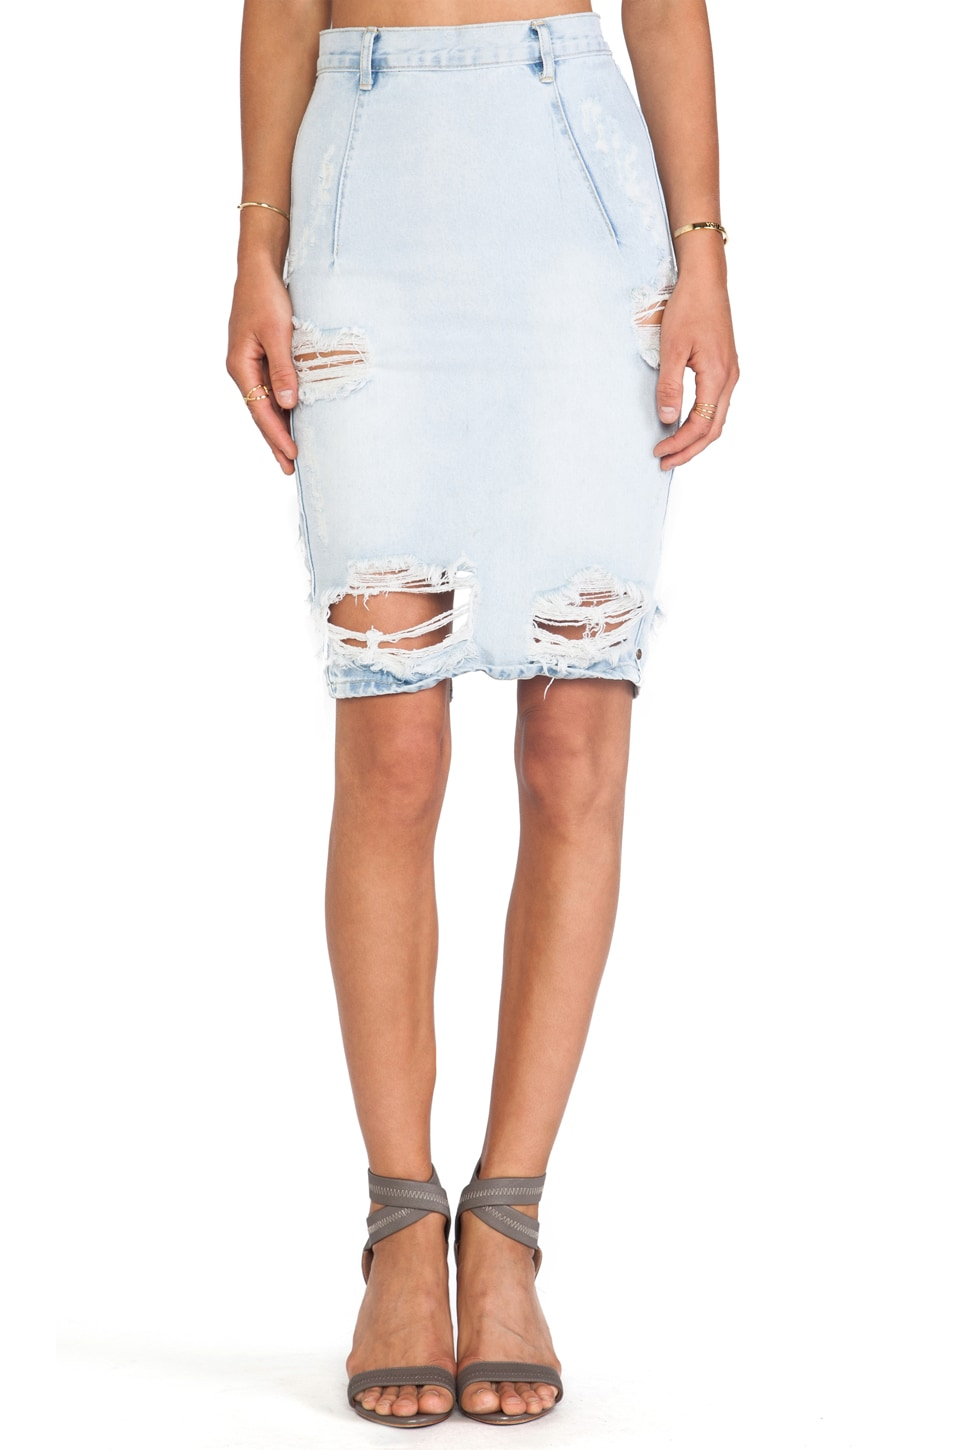 One Teaspoon Denim Skirt One Teaspoon Free Love Denim